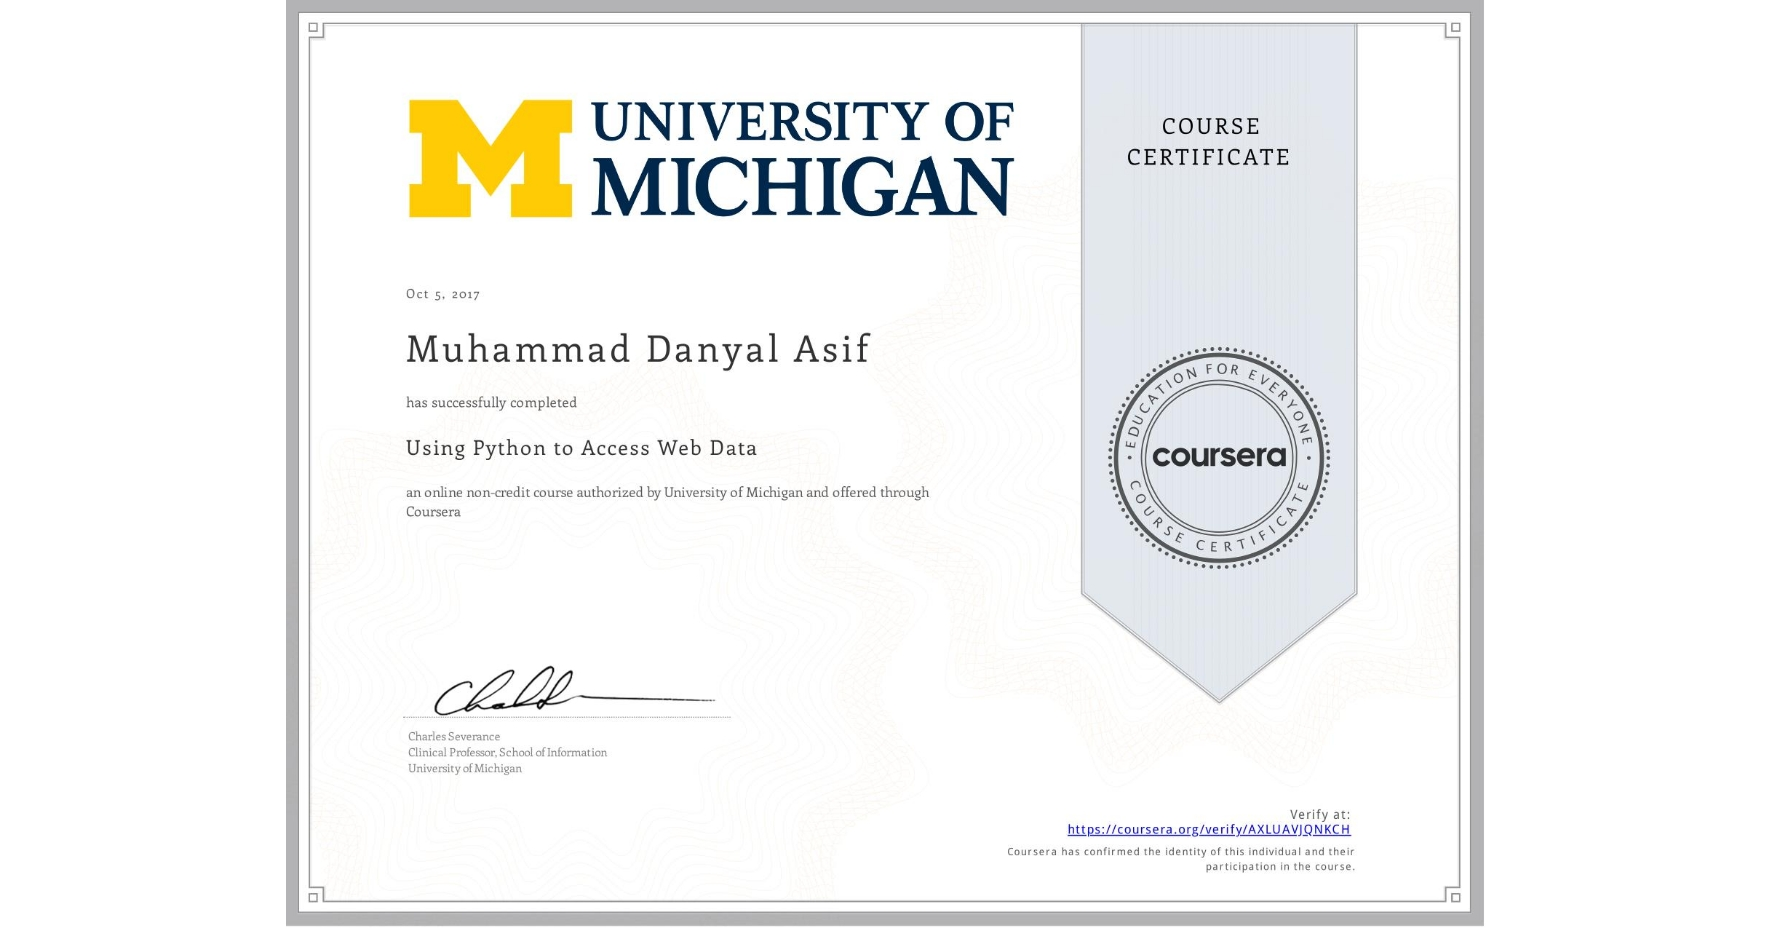 View certificate for Muhammad Danyal  Asif, Using Python to Access Web Data, an online non-credit course authorized by University of Michigan and offered through Coursera